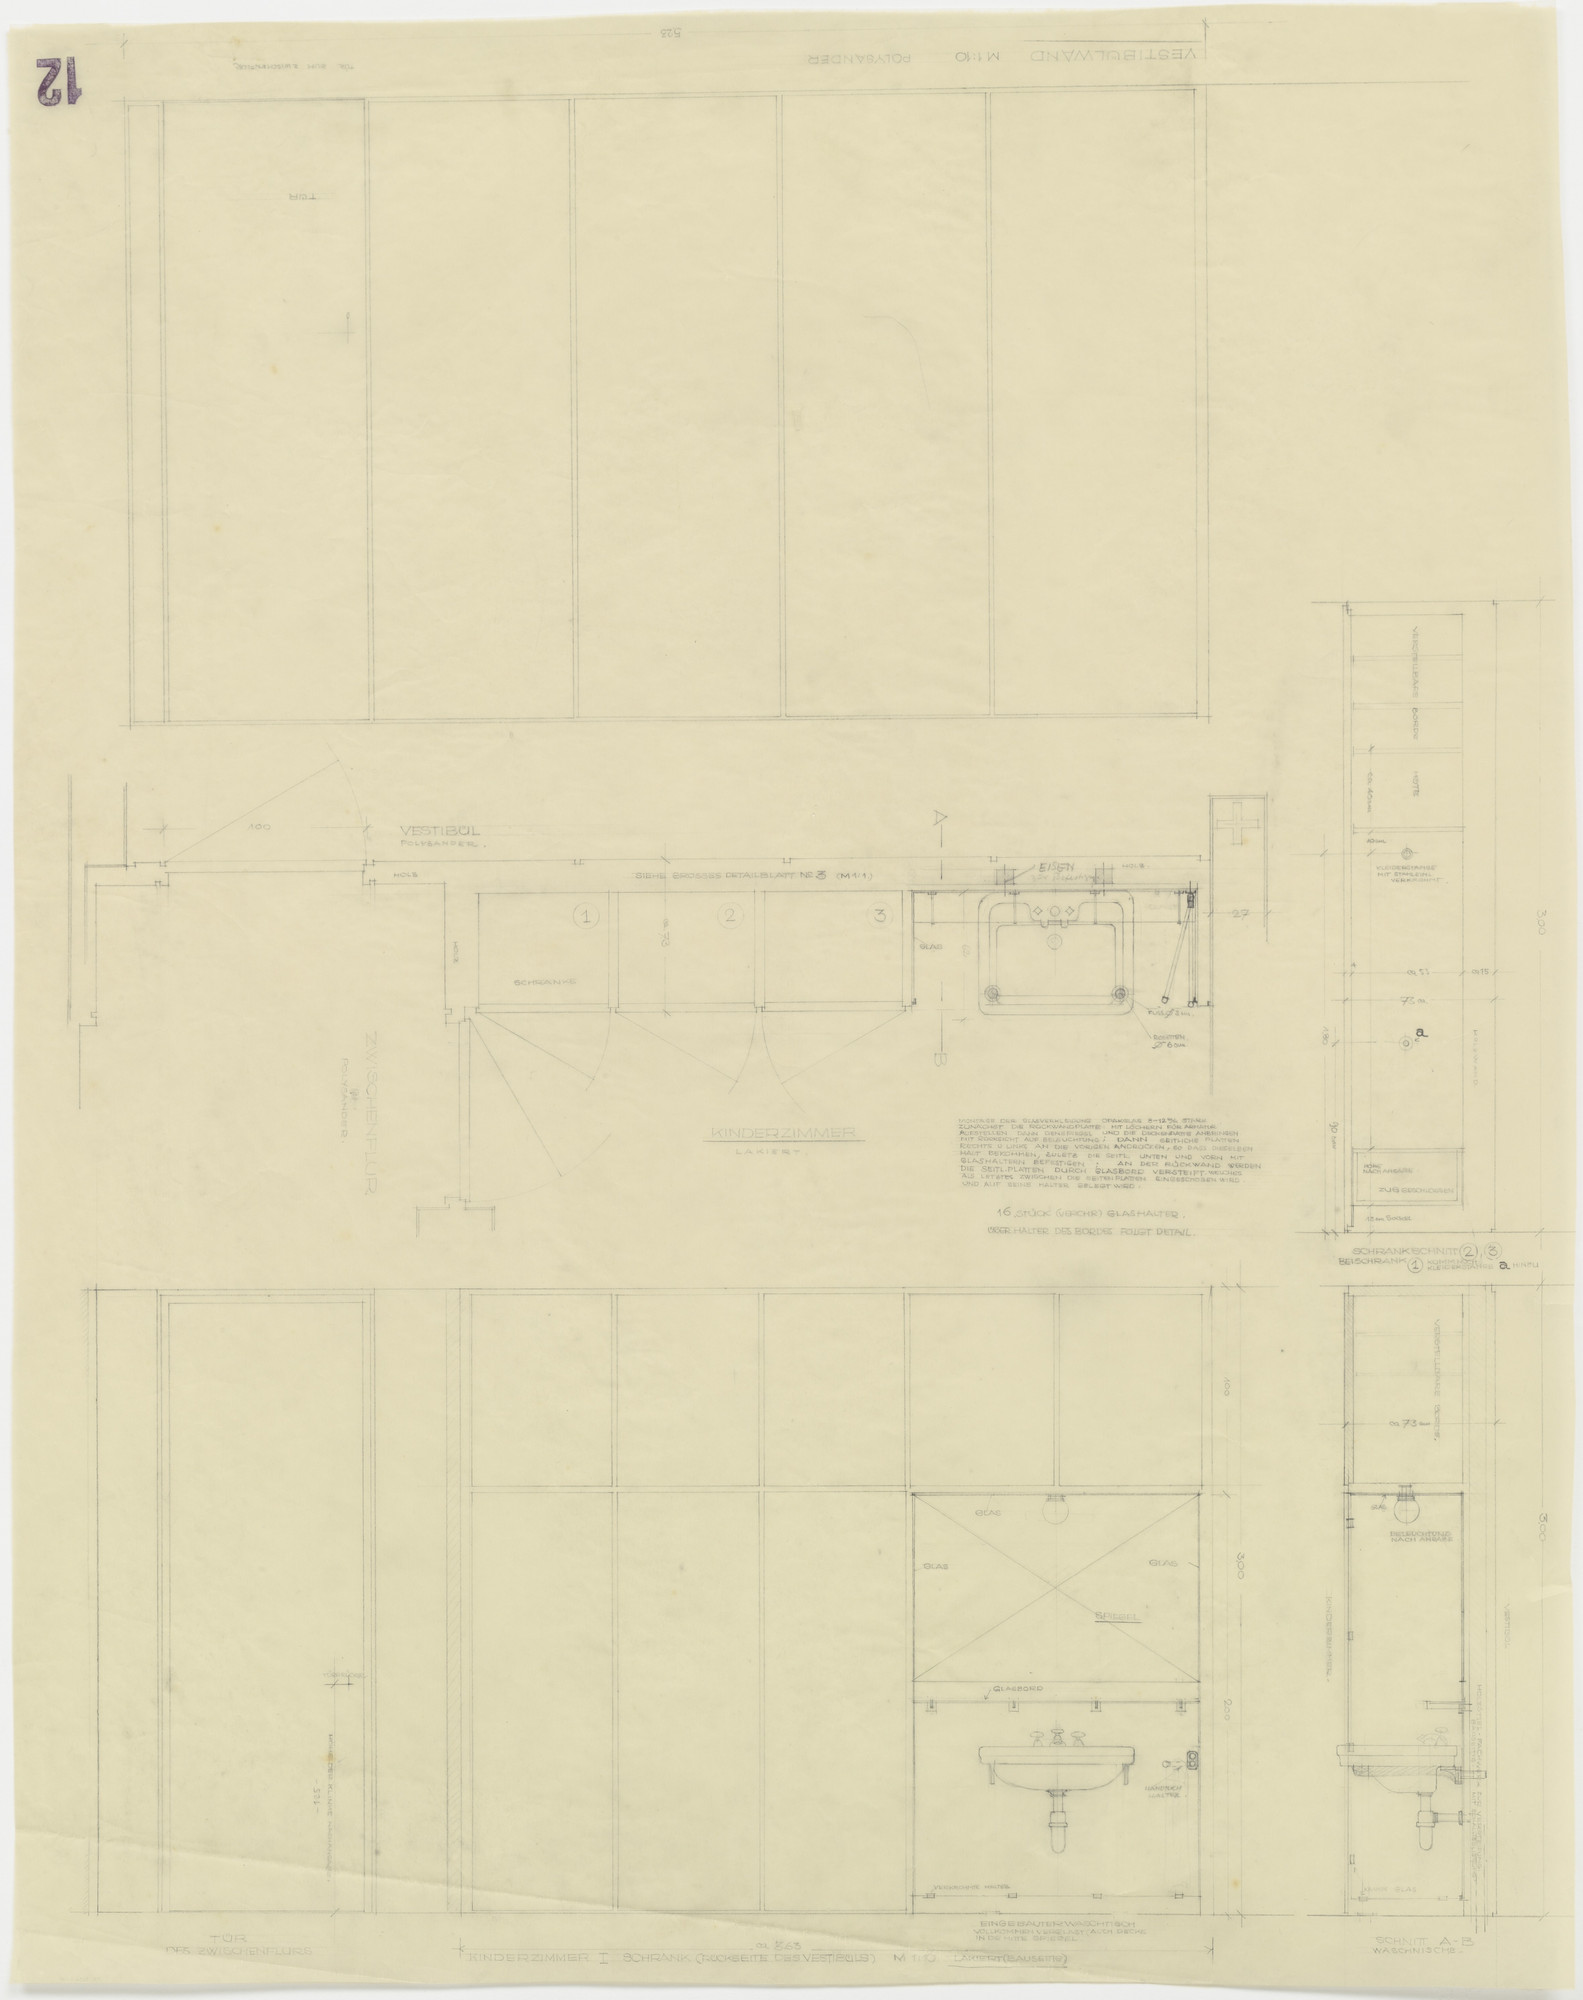 Ludwig Mies van der Rohe. Tugendhat House, Brno, Czech Republic, Storage wall with built-in sink between children's room and vestibule. Plan, elevations, sections.. 1928–1930